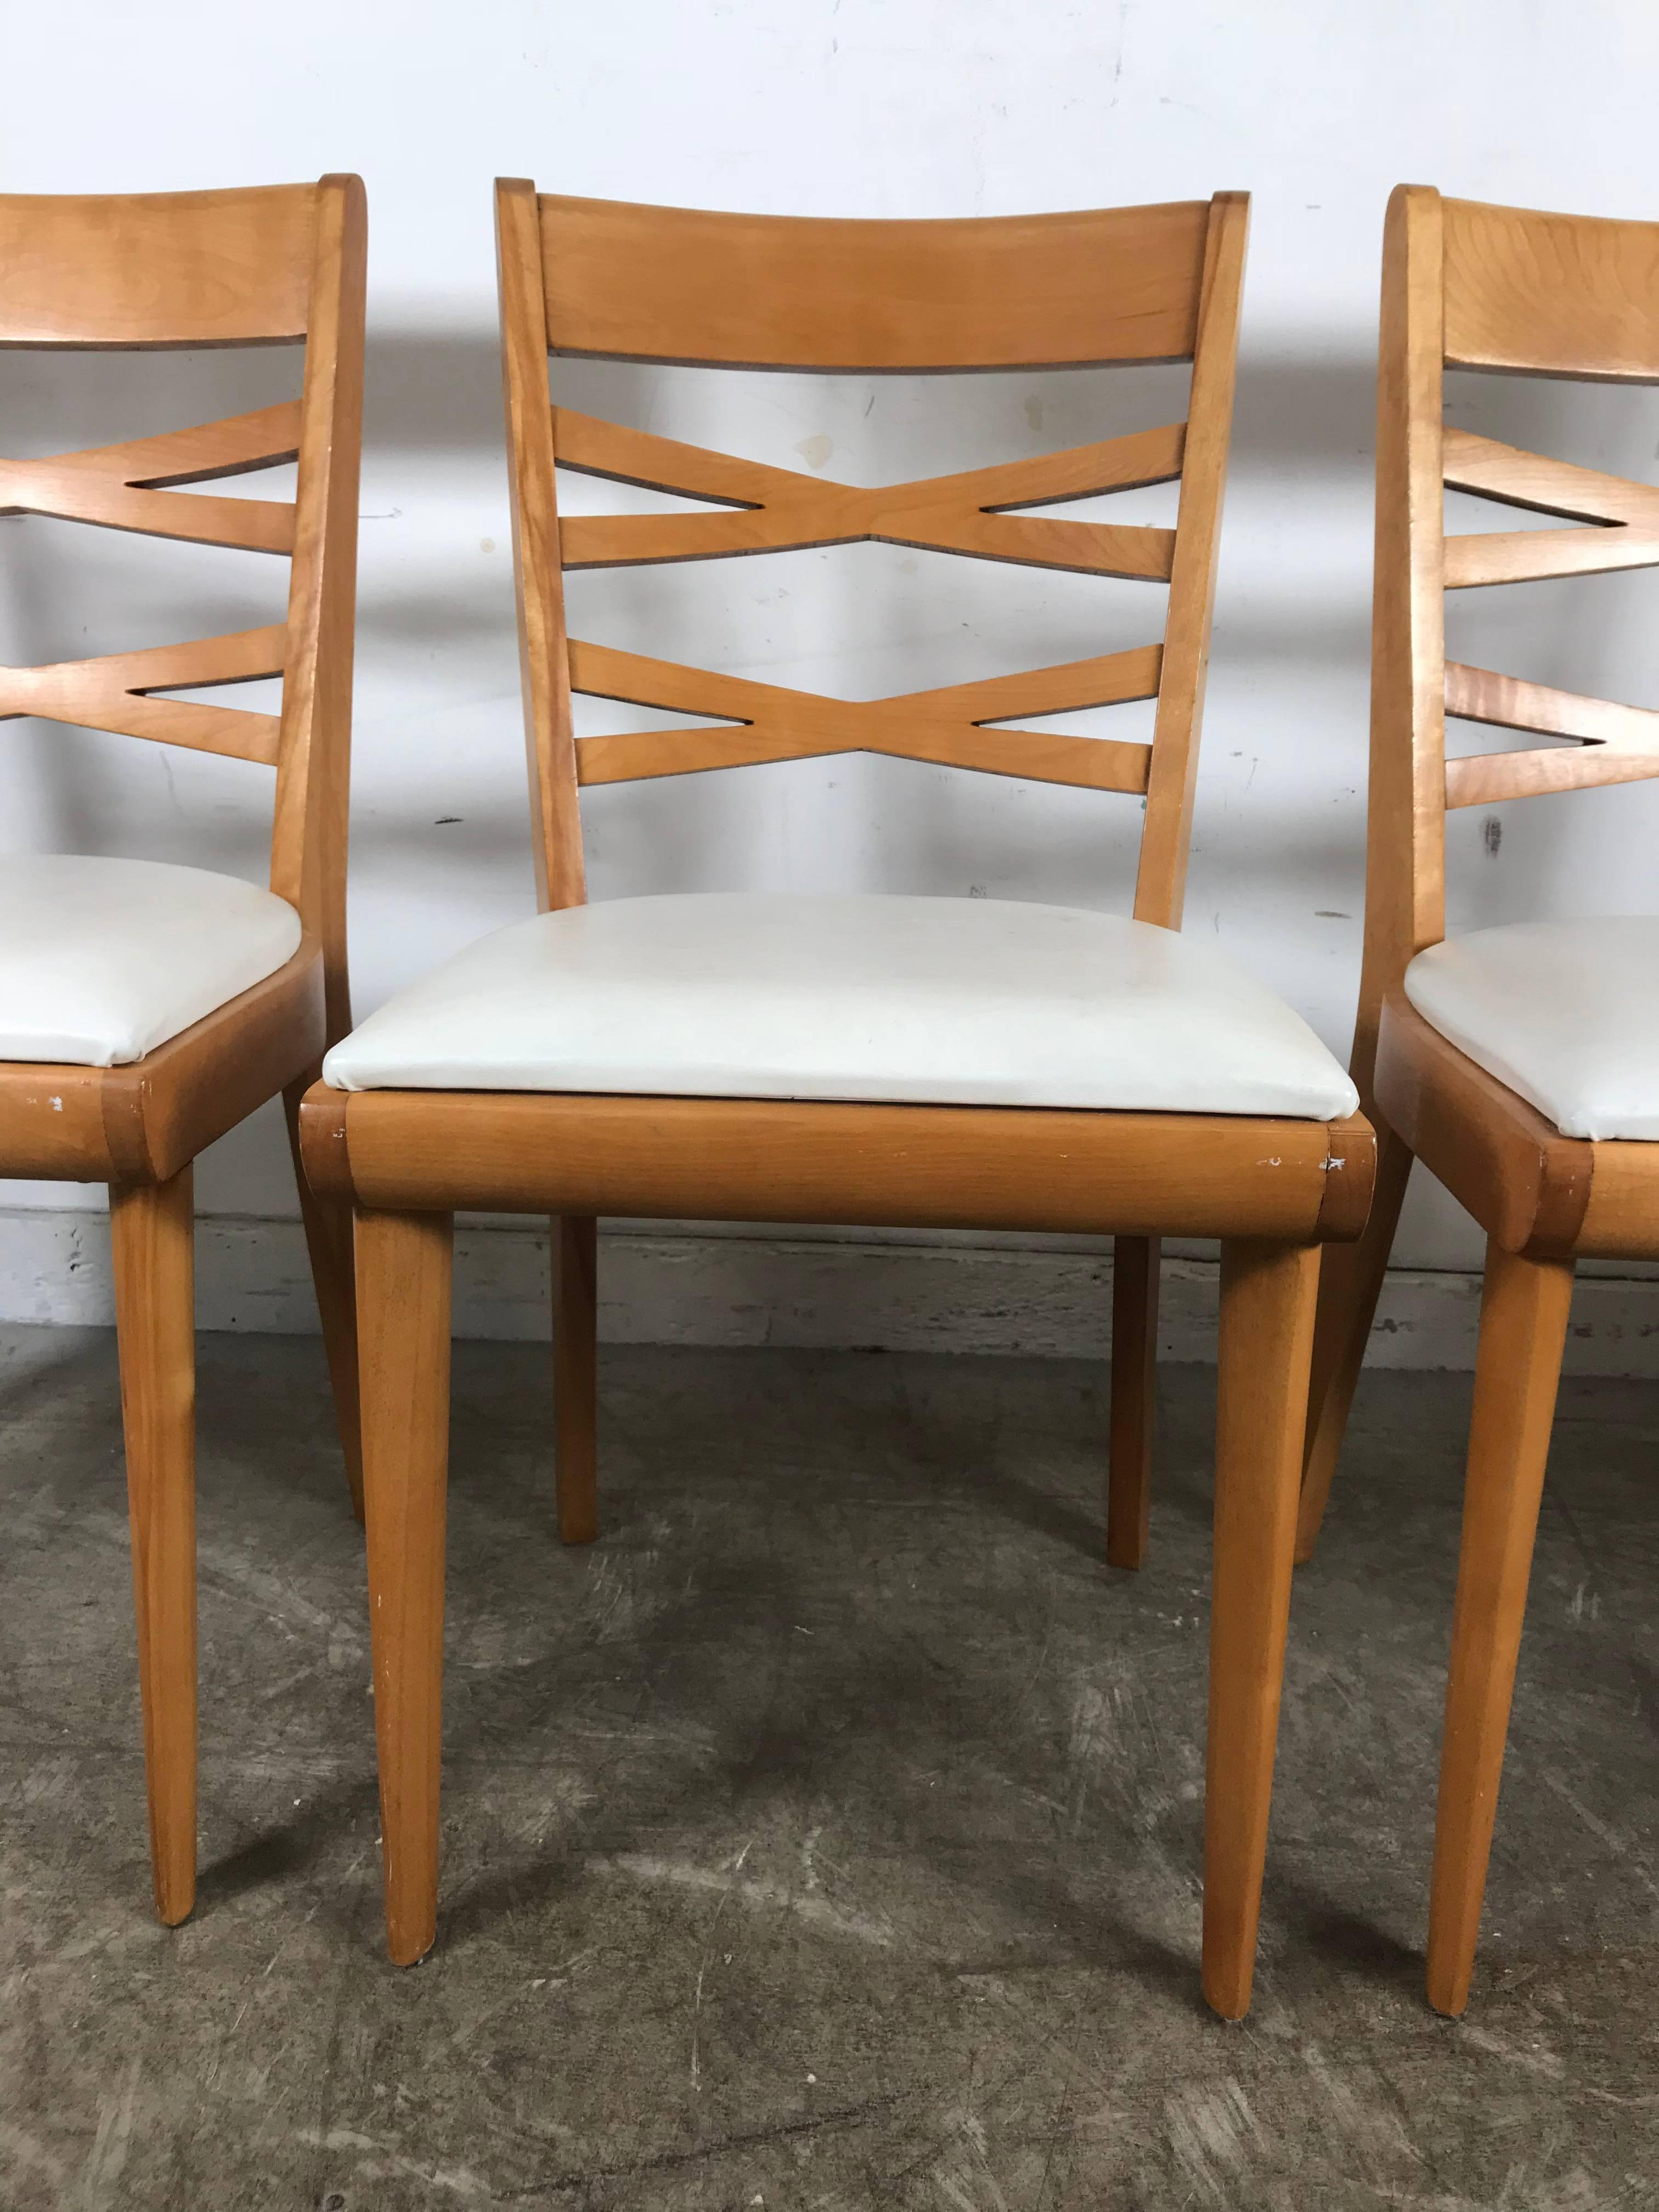 Heywood Wakefield Dining Chairs Handsome Set Of Four Midcentury Birch Dining Chairs By Heywood Wakefield